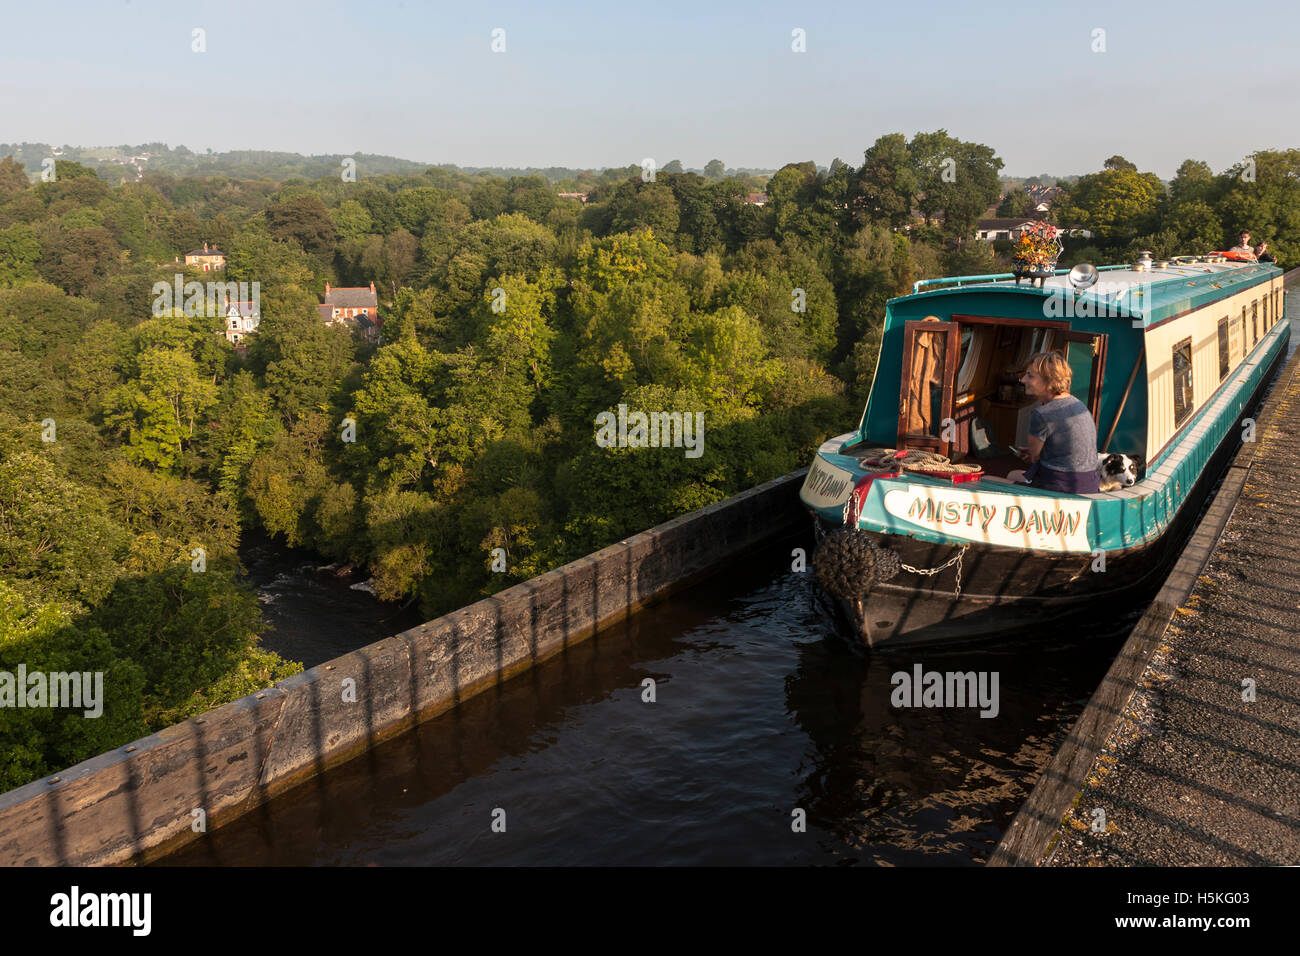 Narrowboat on the Pontcysllyte Aqueduct, Llangollen Canal, Wrexham, Wales.  MODEL RELEASED - Stock Image